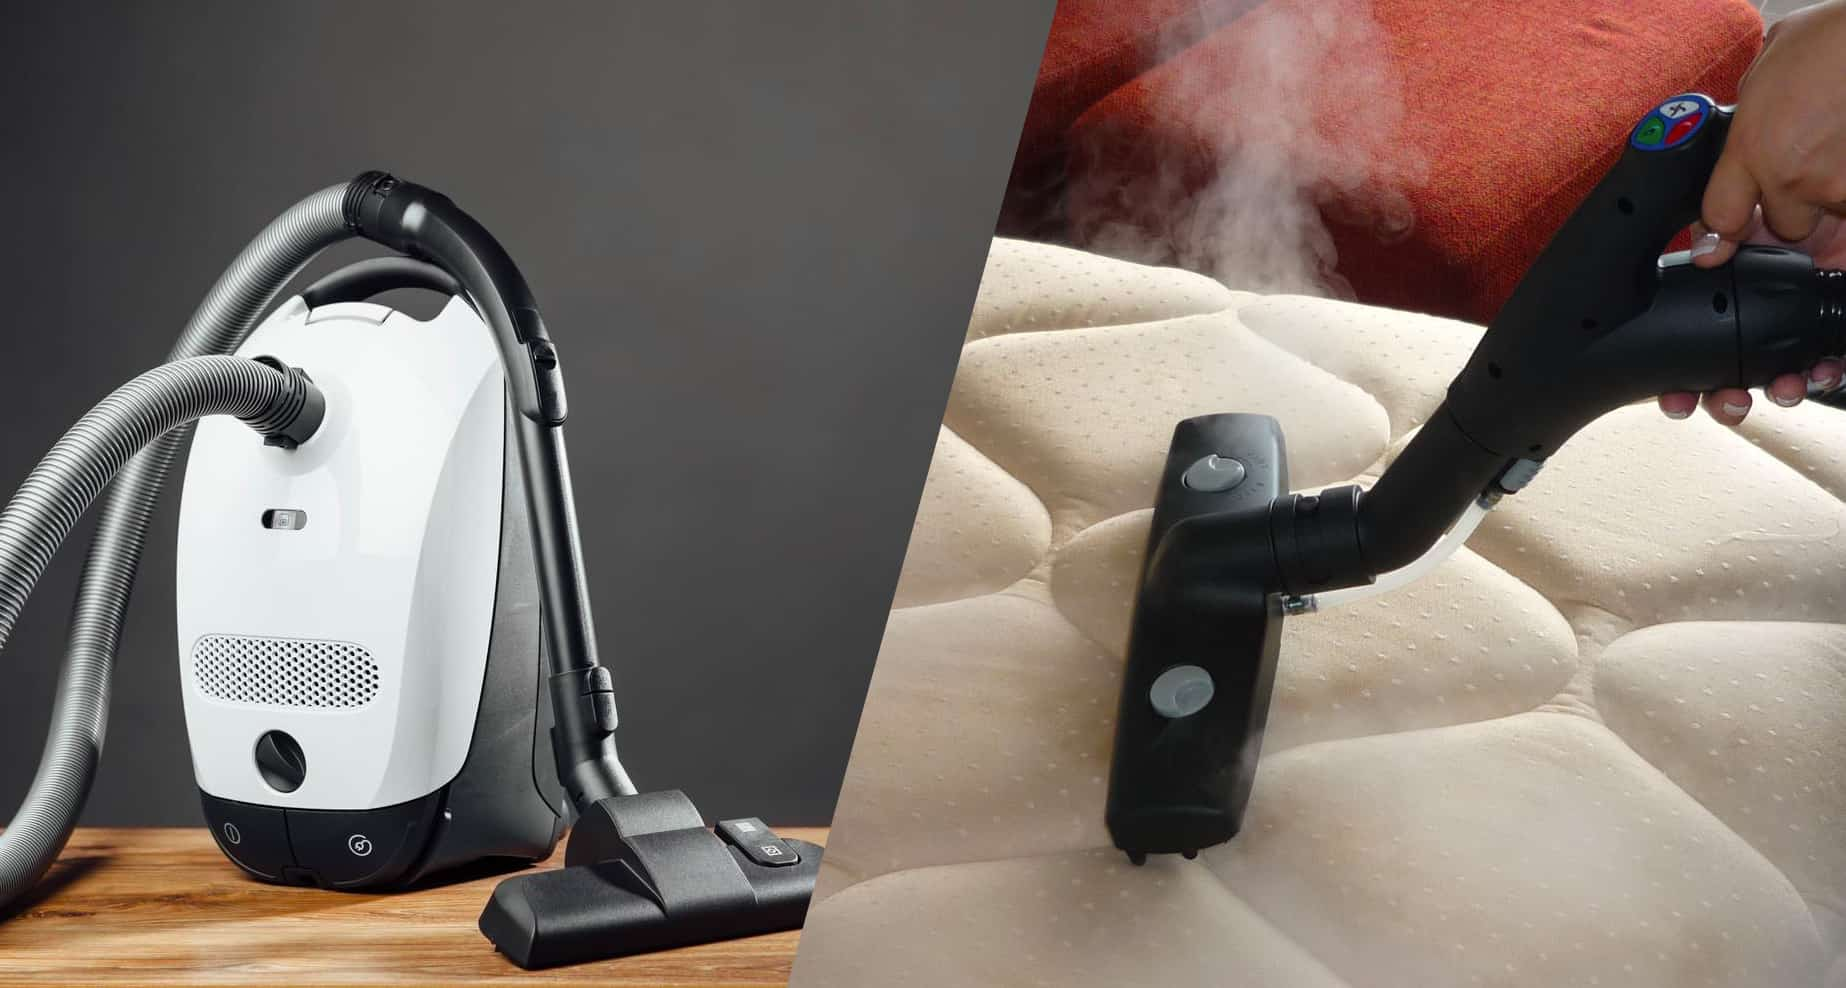 best bed bug steamers and vacuums